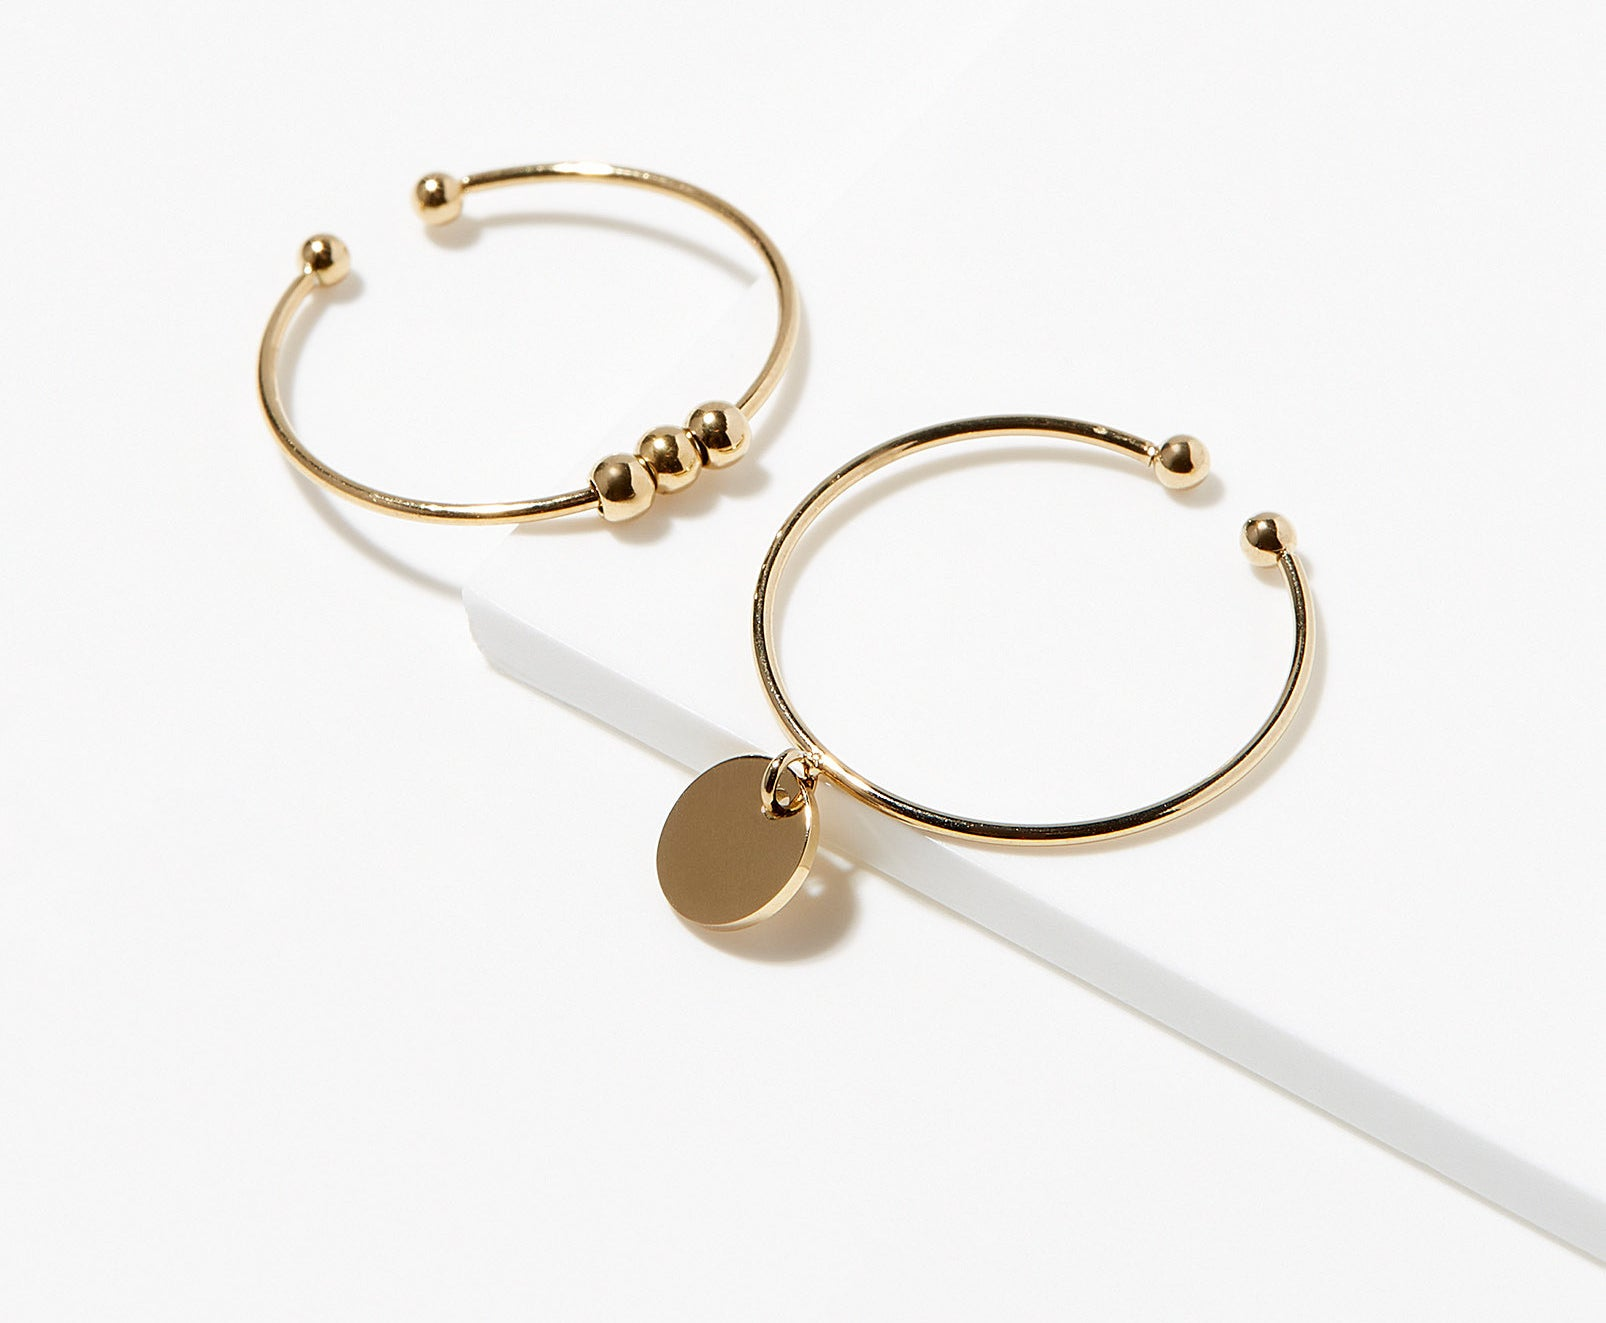 A pair of adjustable gold rings on a plain background